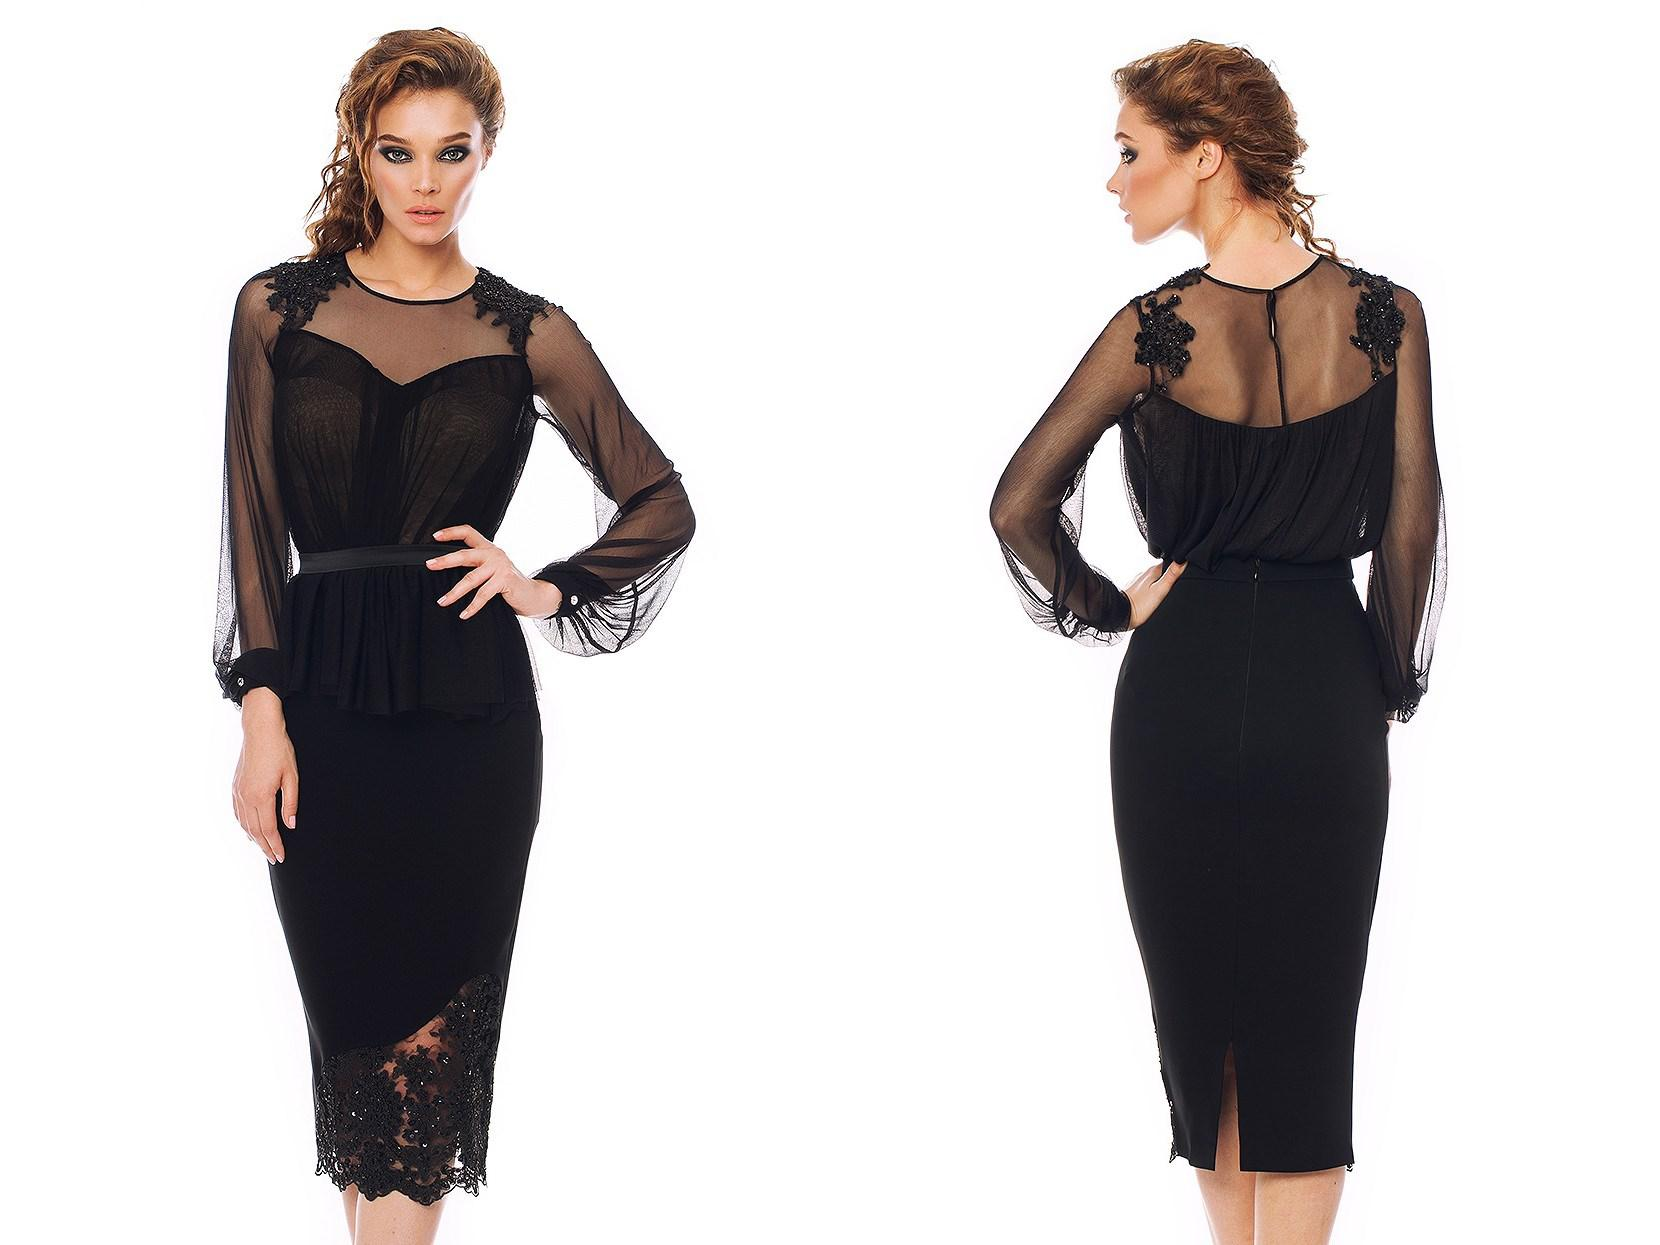 Wedding Sexy Cocktail Dresses black sexy cocktail dresses jewel neckline sheer back long sleeve tea length sheath pleated appliqued lace prom party dress custo